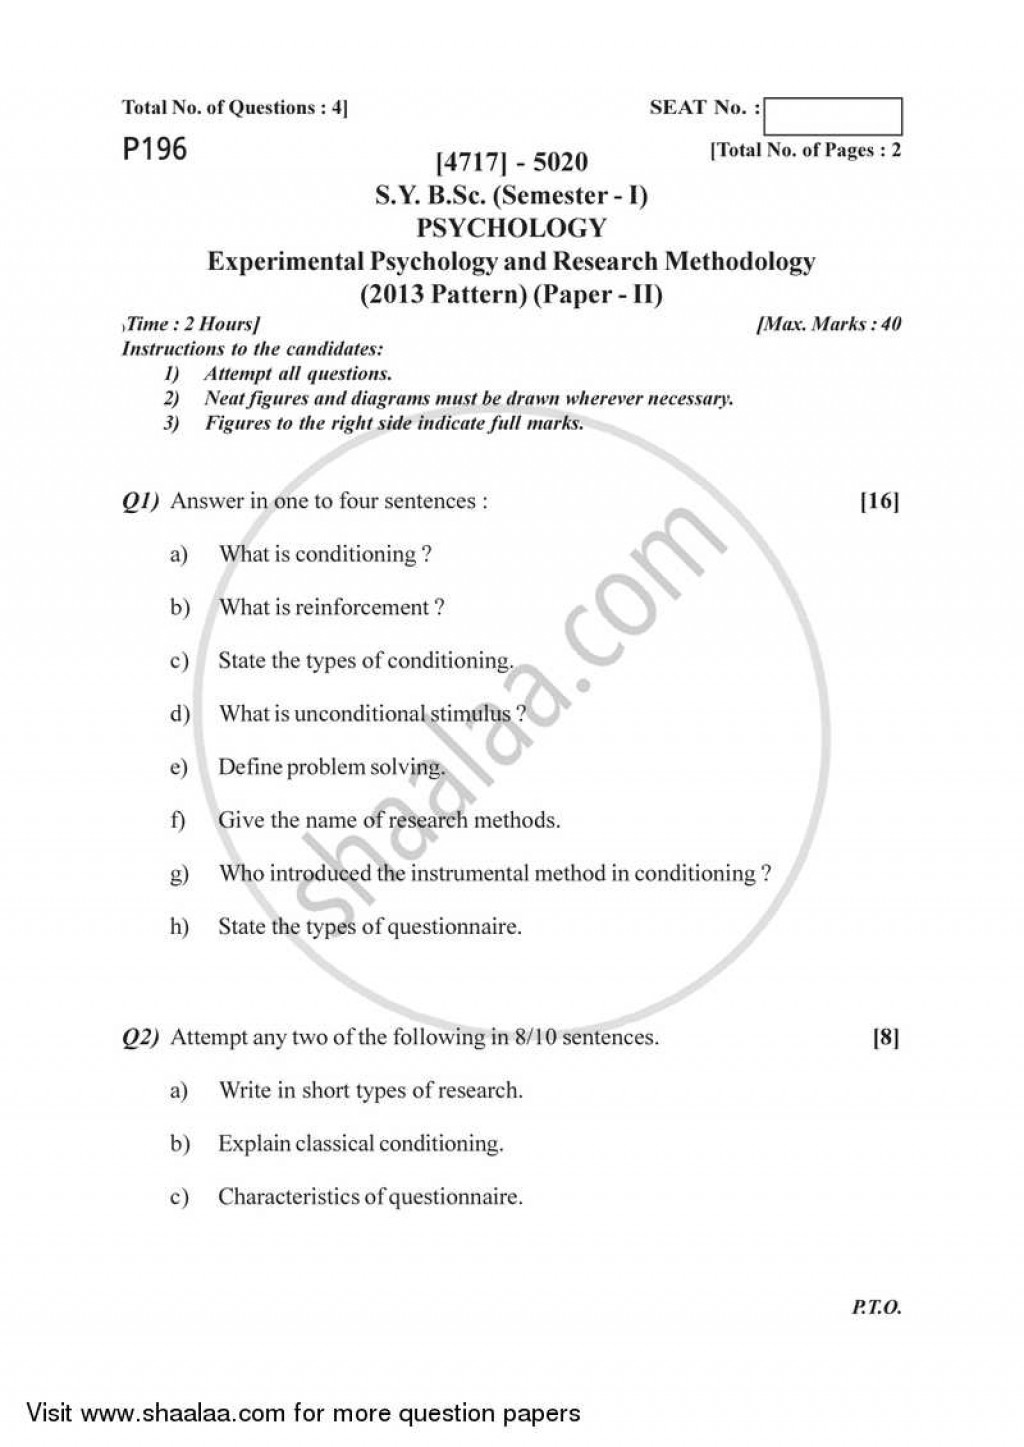 025 Research Paper University Of Pune Bachelor Bsc Experimental Psychology Methodology Semester Sybsc Pattern 2e41c64dd7a97493da58d01b3ff66032b Dreaded For Topics Class Examples Sample On Developmental Large